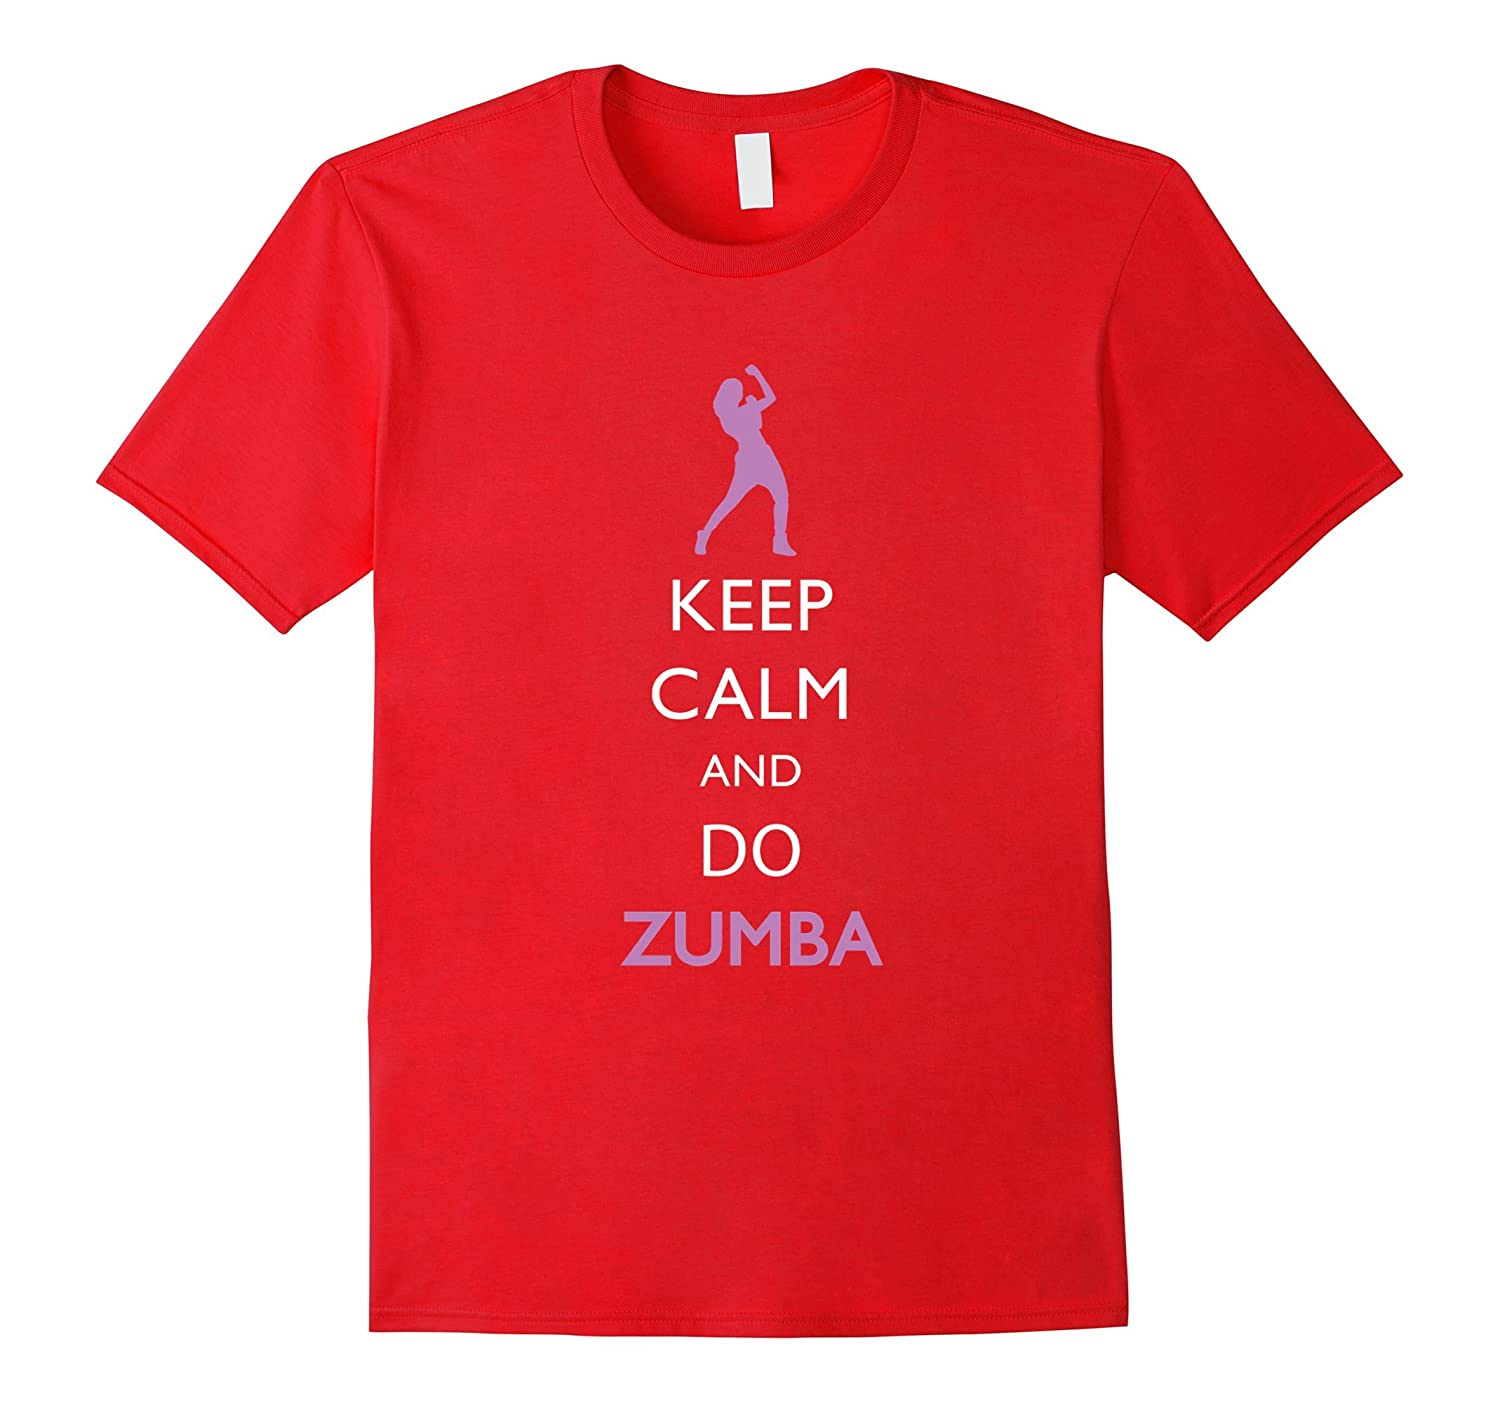 keep calm and do zumba t shirt rt rateeshirt. Black Bedroom Furniture Sets. Home Design Ideas